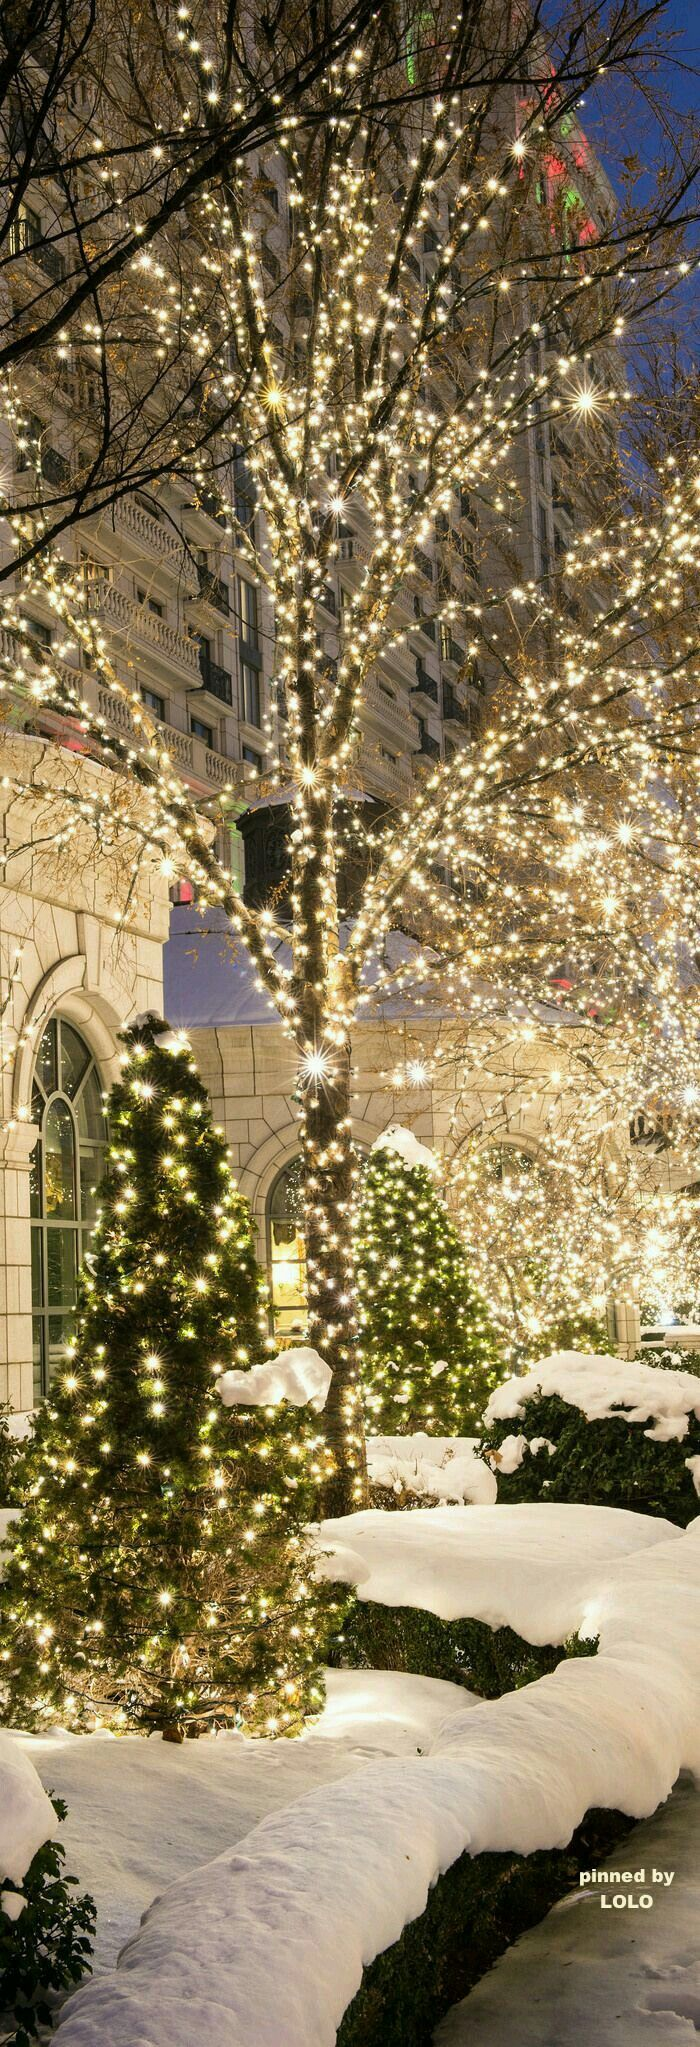 It's Christmas time in the city.